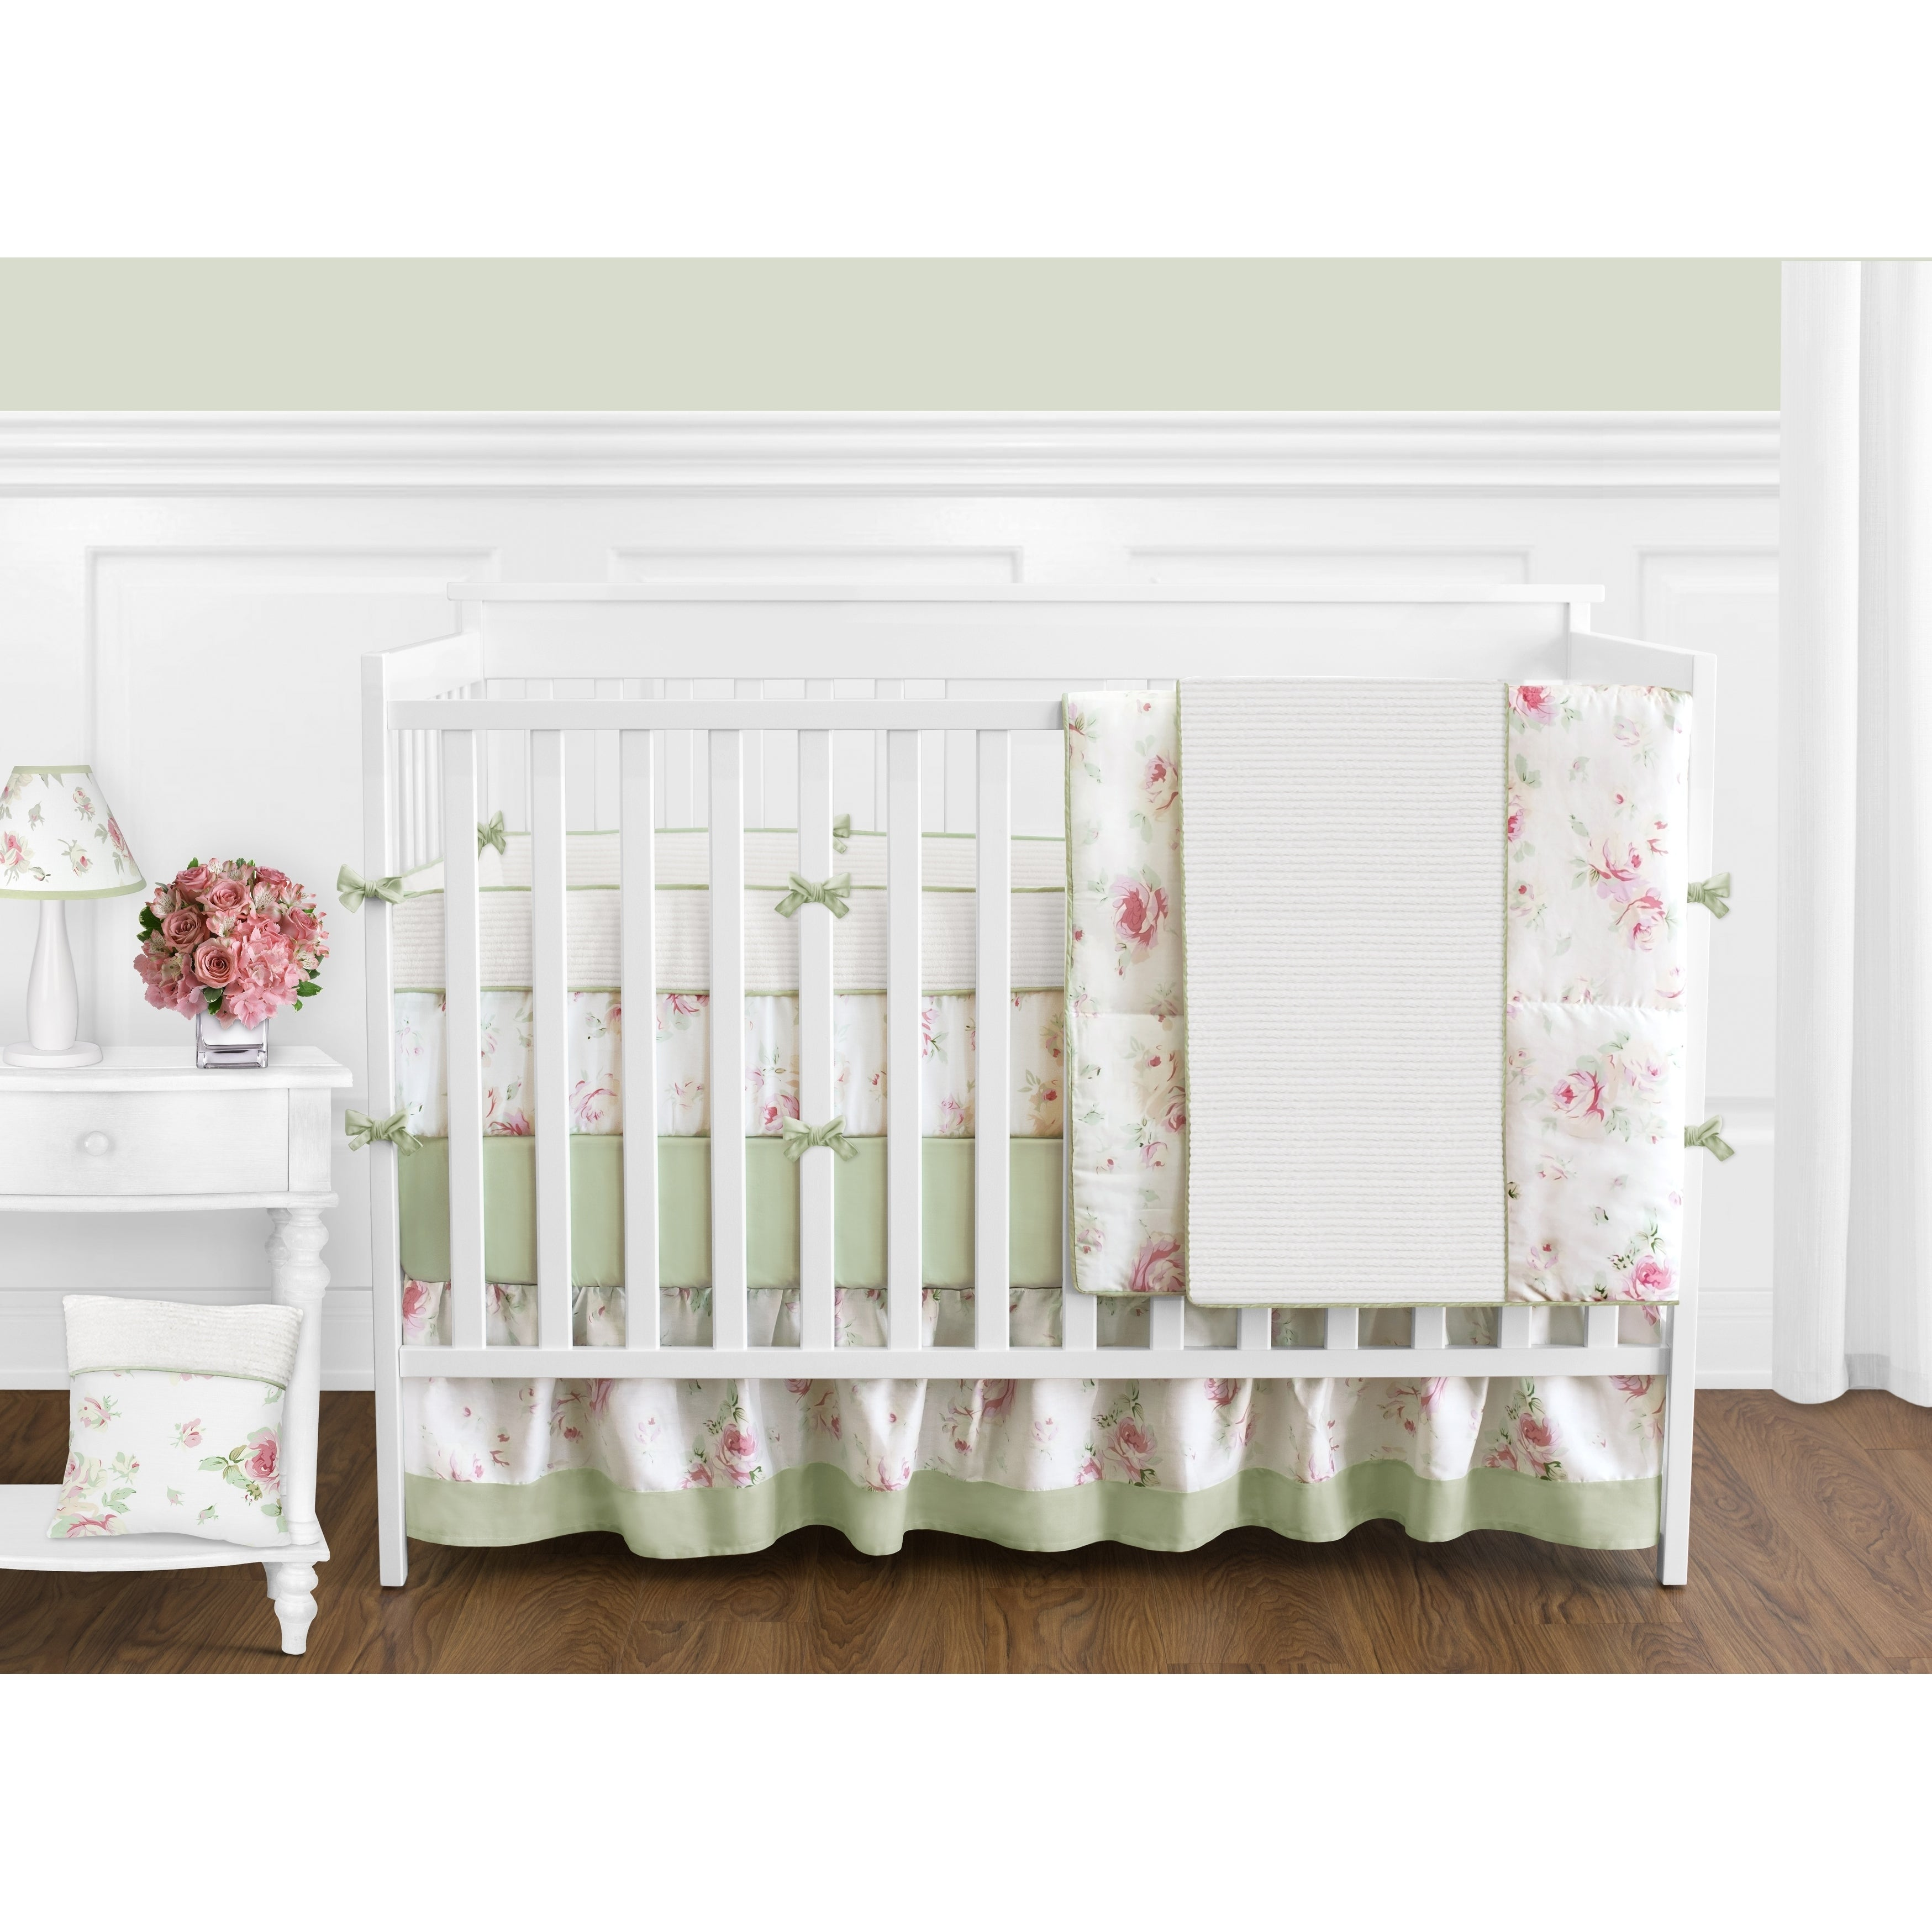 luxury jojo set decoration designs astonishing childa bedroom of and bear bedding largea crib theme with cribs ideas the ballerina decor for look photo full shabby sweet your mini feel portable to by complete chenille sets nursery